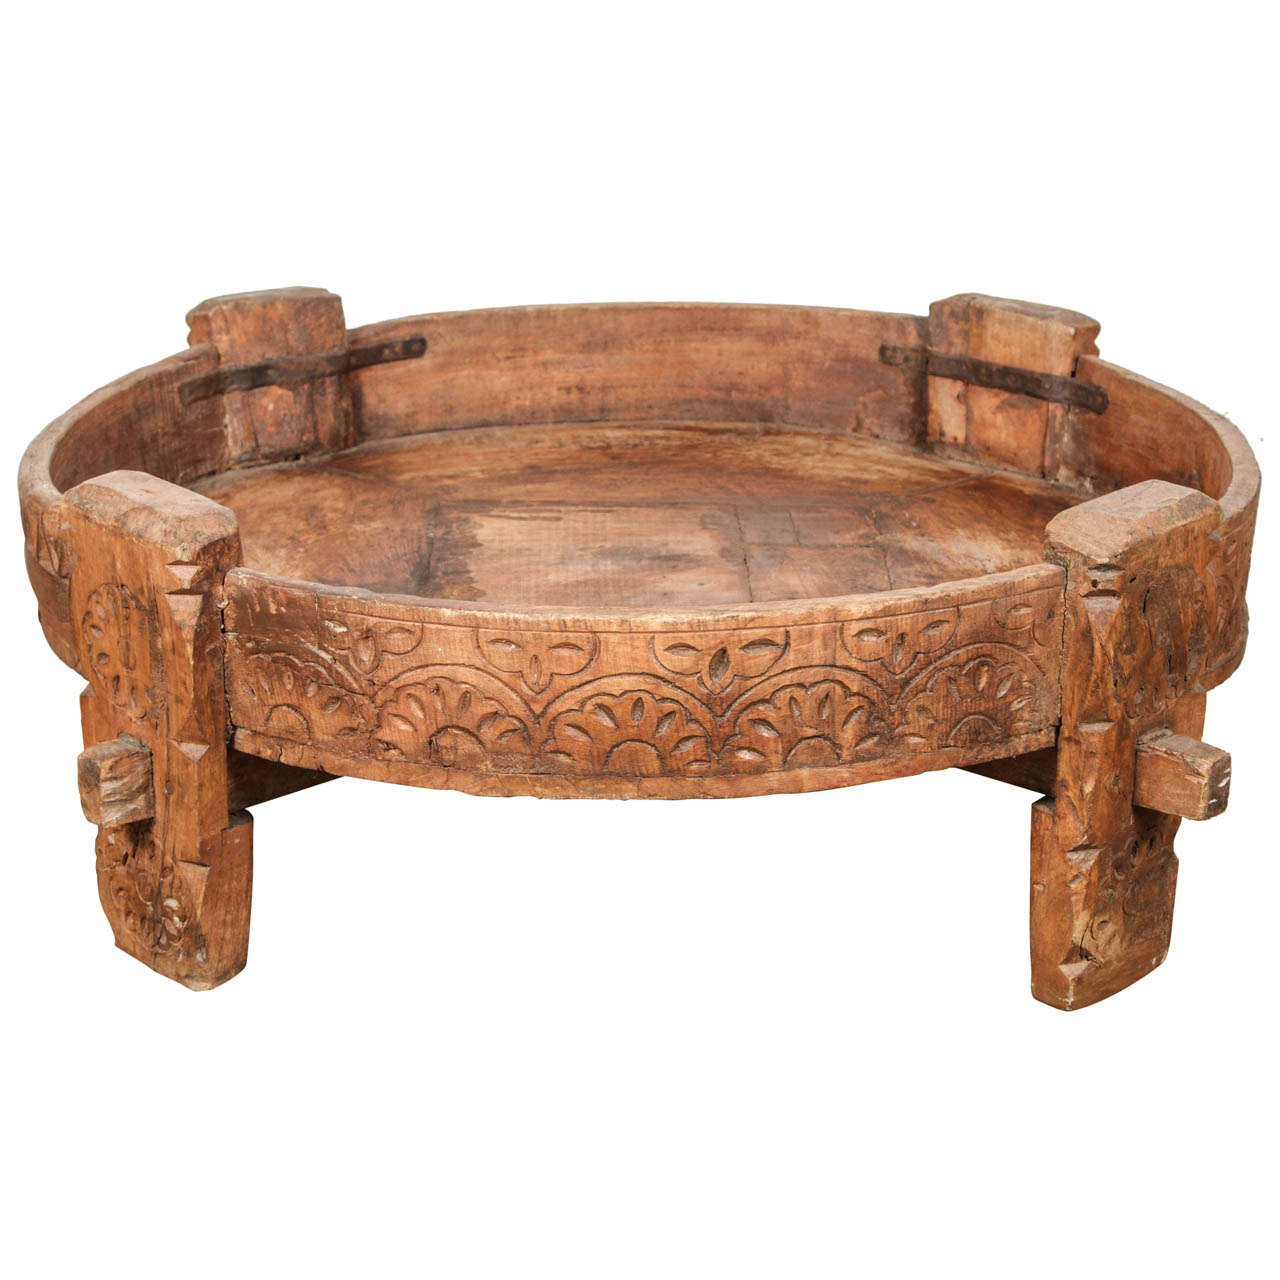 Moroccan wooden tribal table at 1stdibs for Chinese furniture for sale in south africa